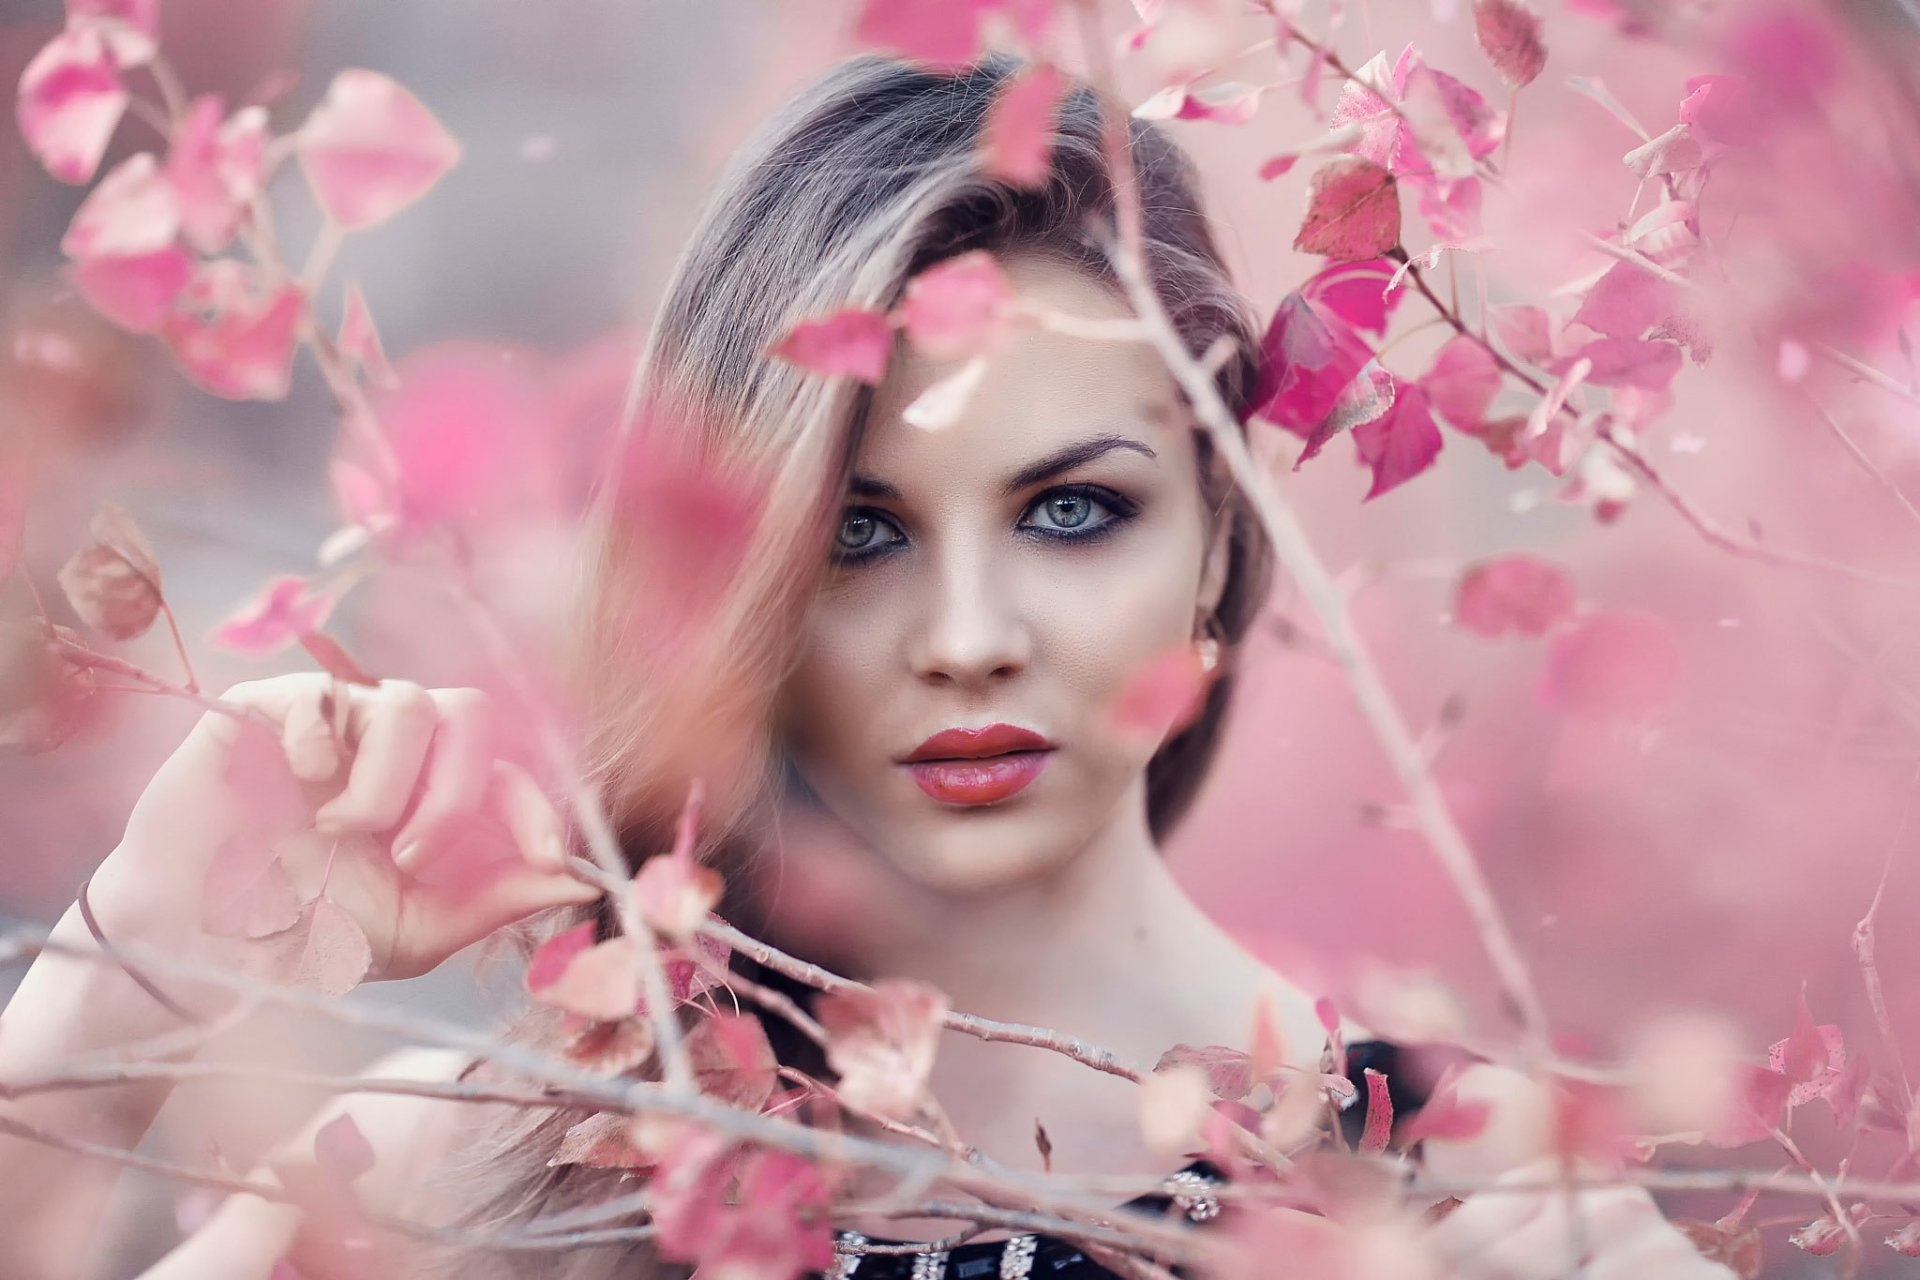 Women - Face  Blue Eyes Outdoor Blonde Lipstick Pink Girl Model Woman Wallpaper